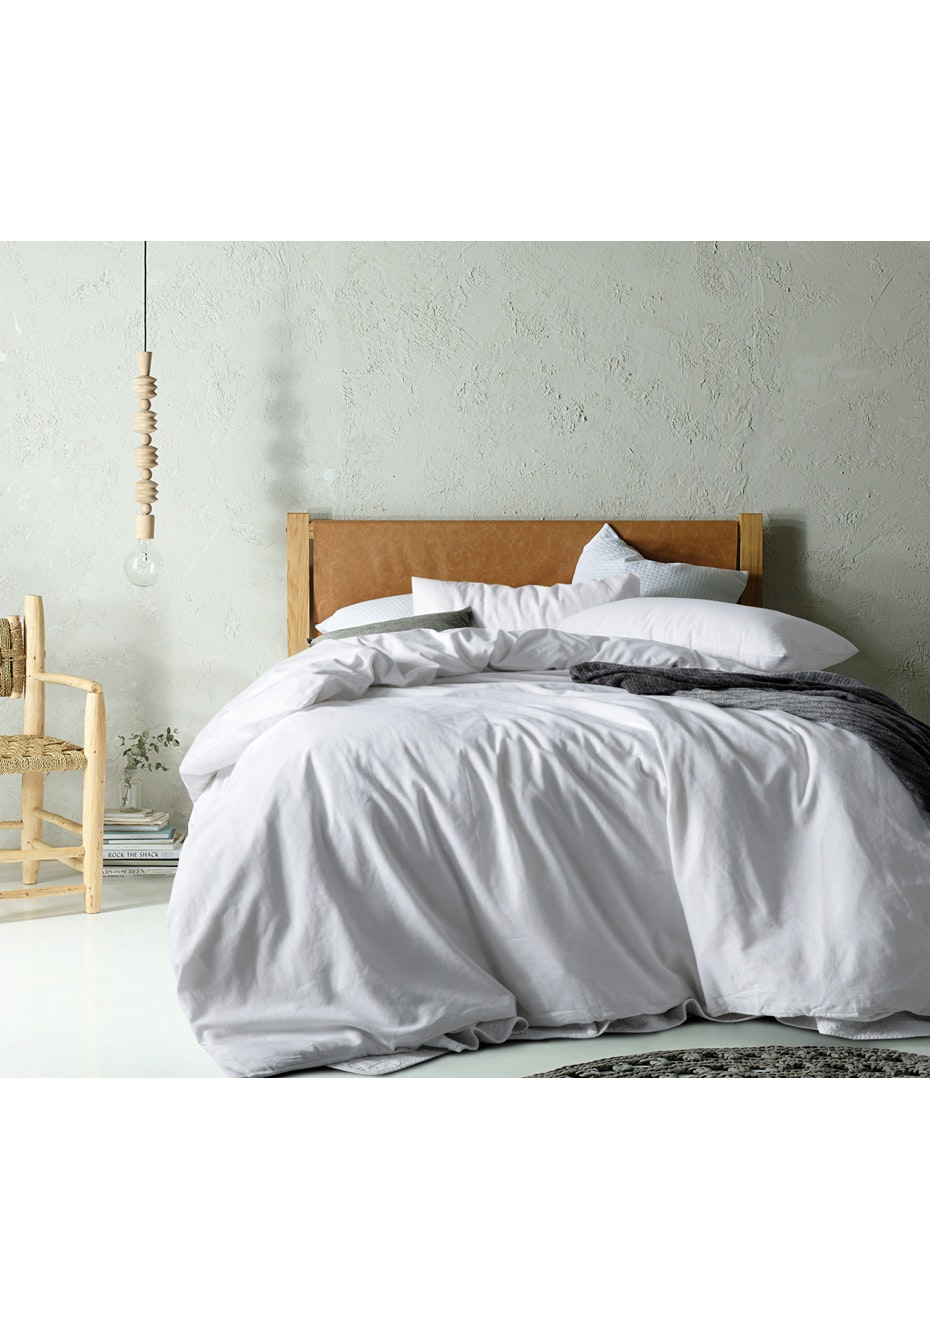 Linen/Cotton White Quilt Cover Set - King Bed